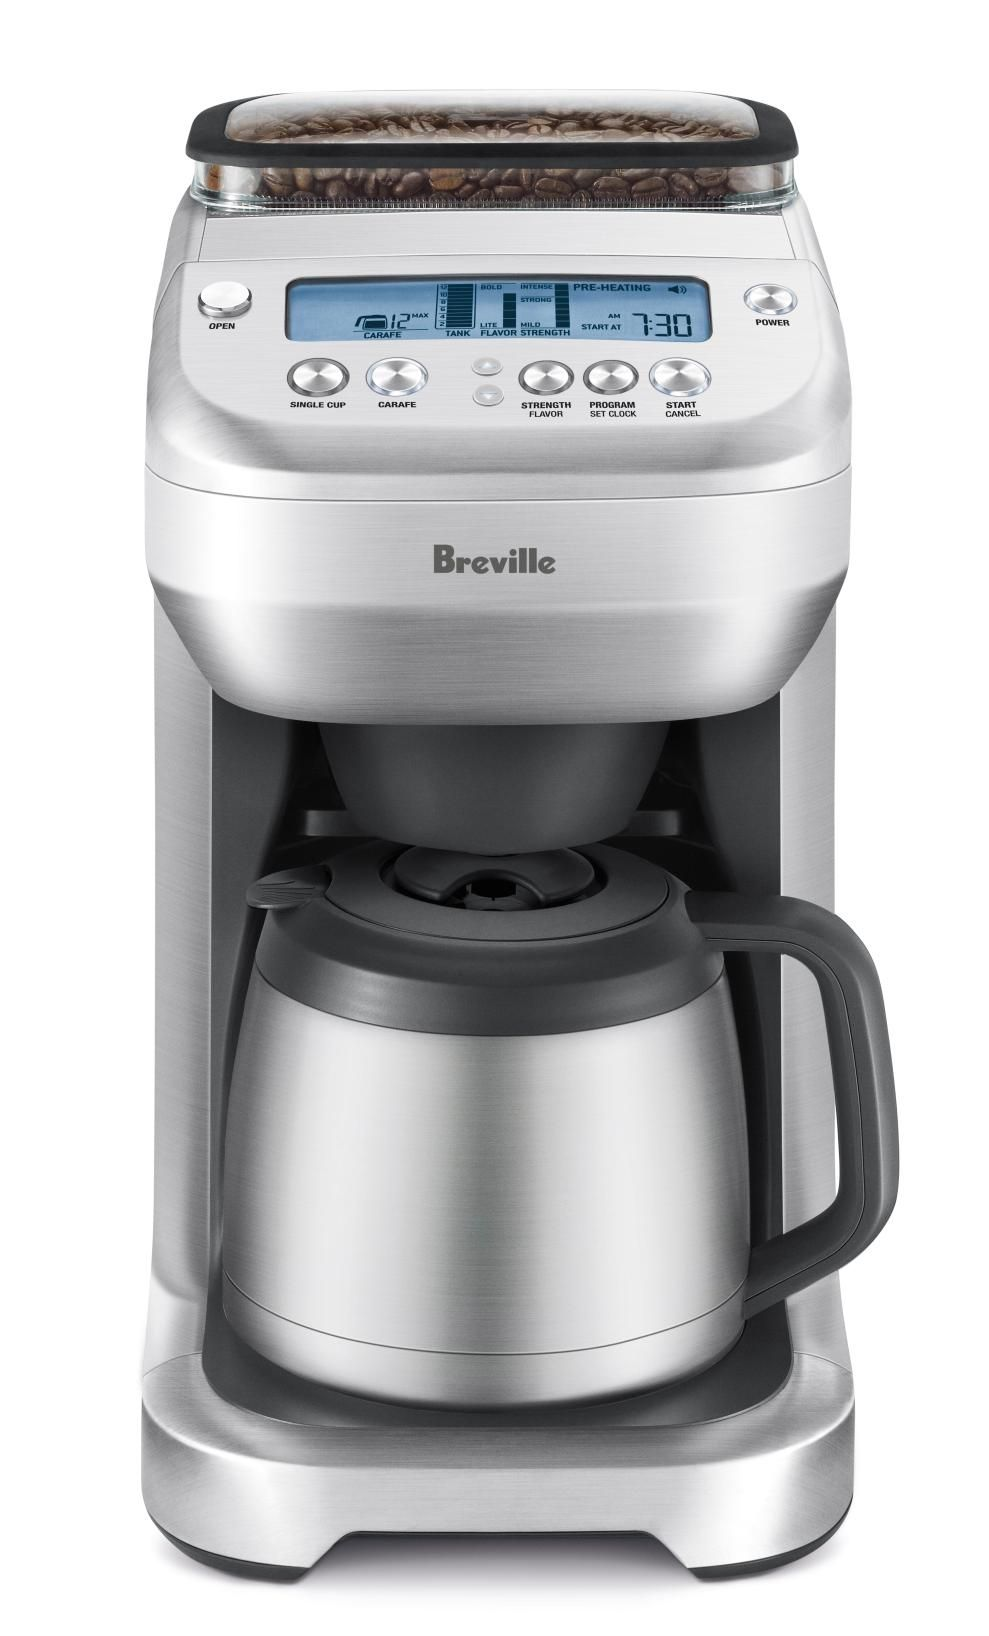 Breville YouBrew Coffee maker with grinder, Thermal